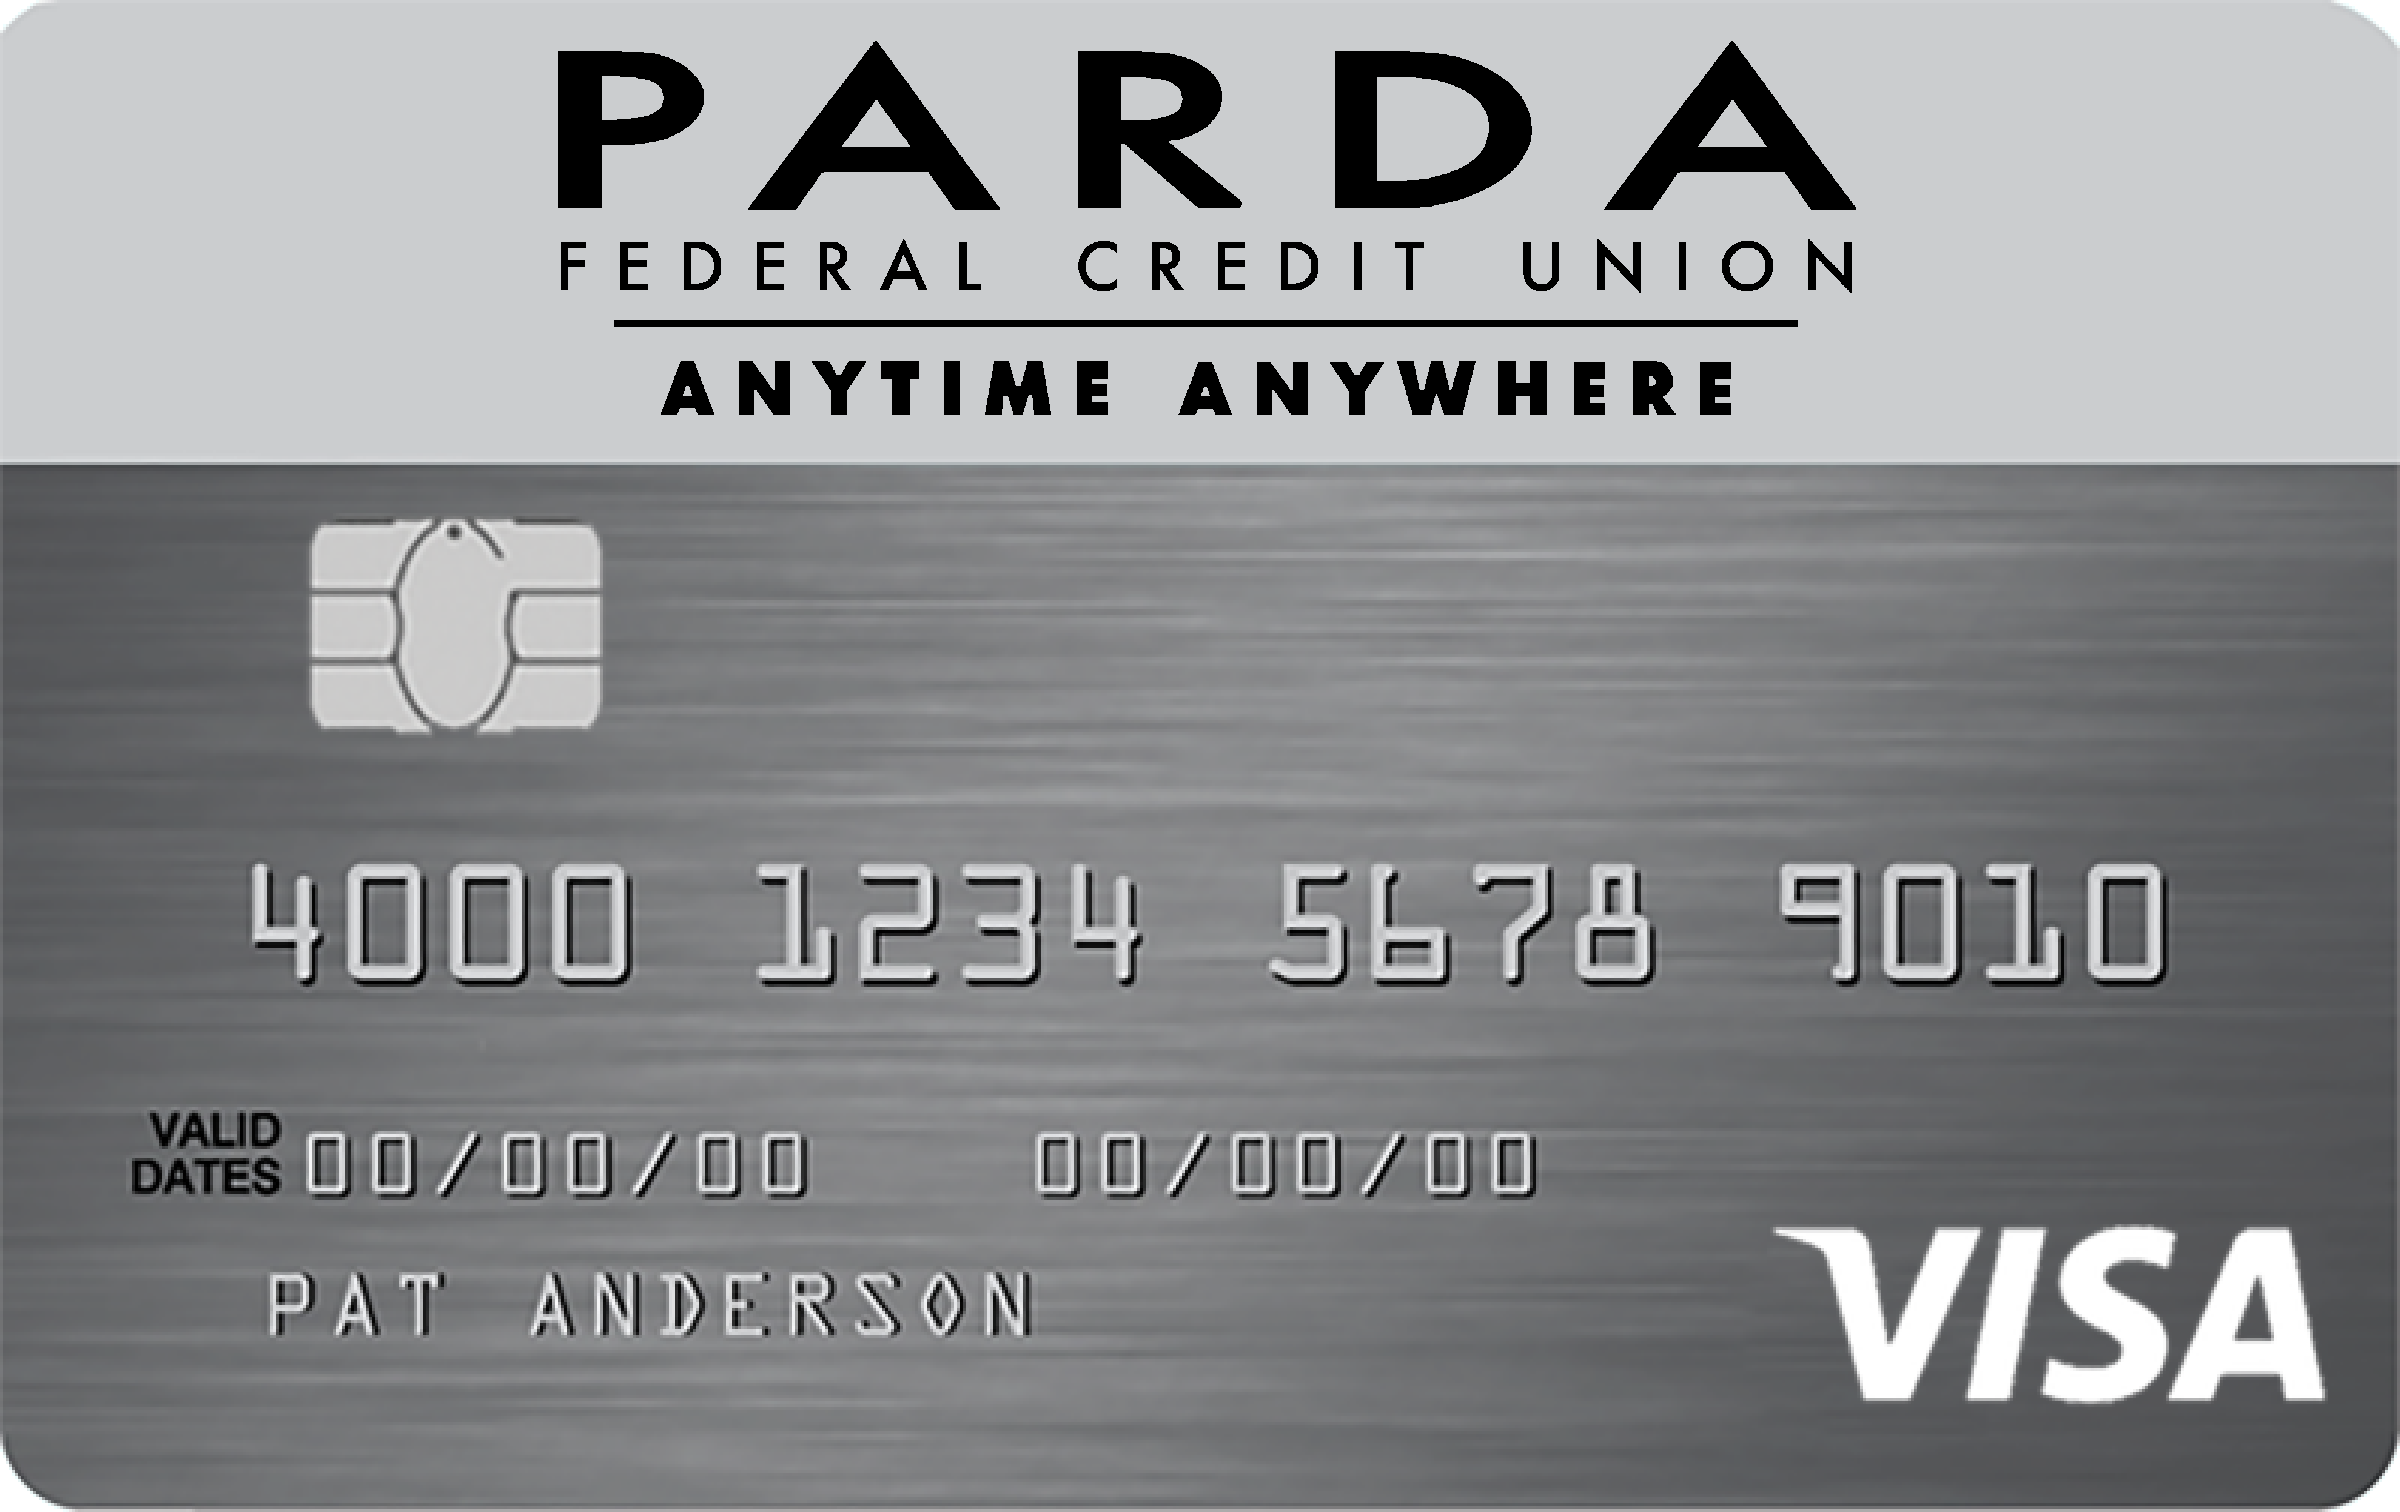 PARDA Federal Credit Union